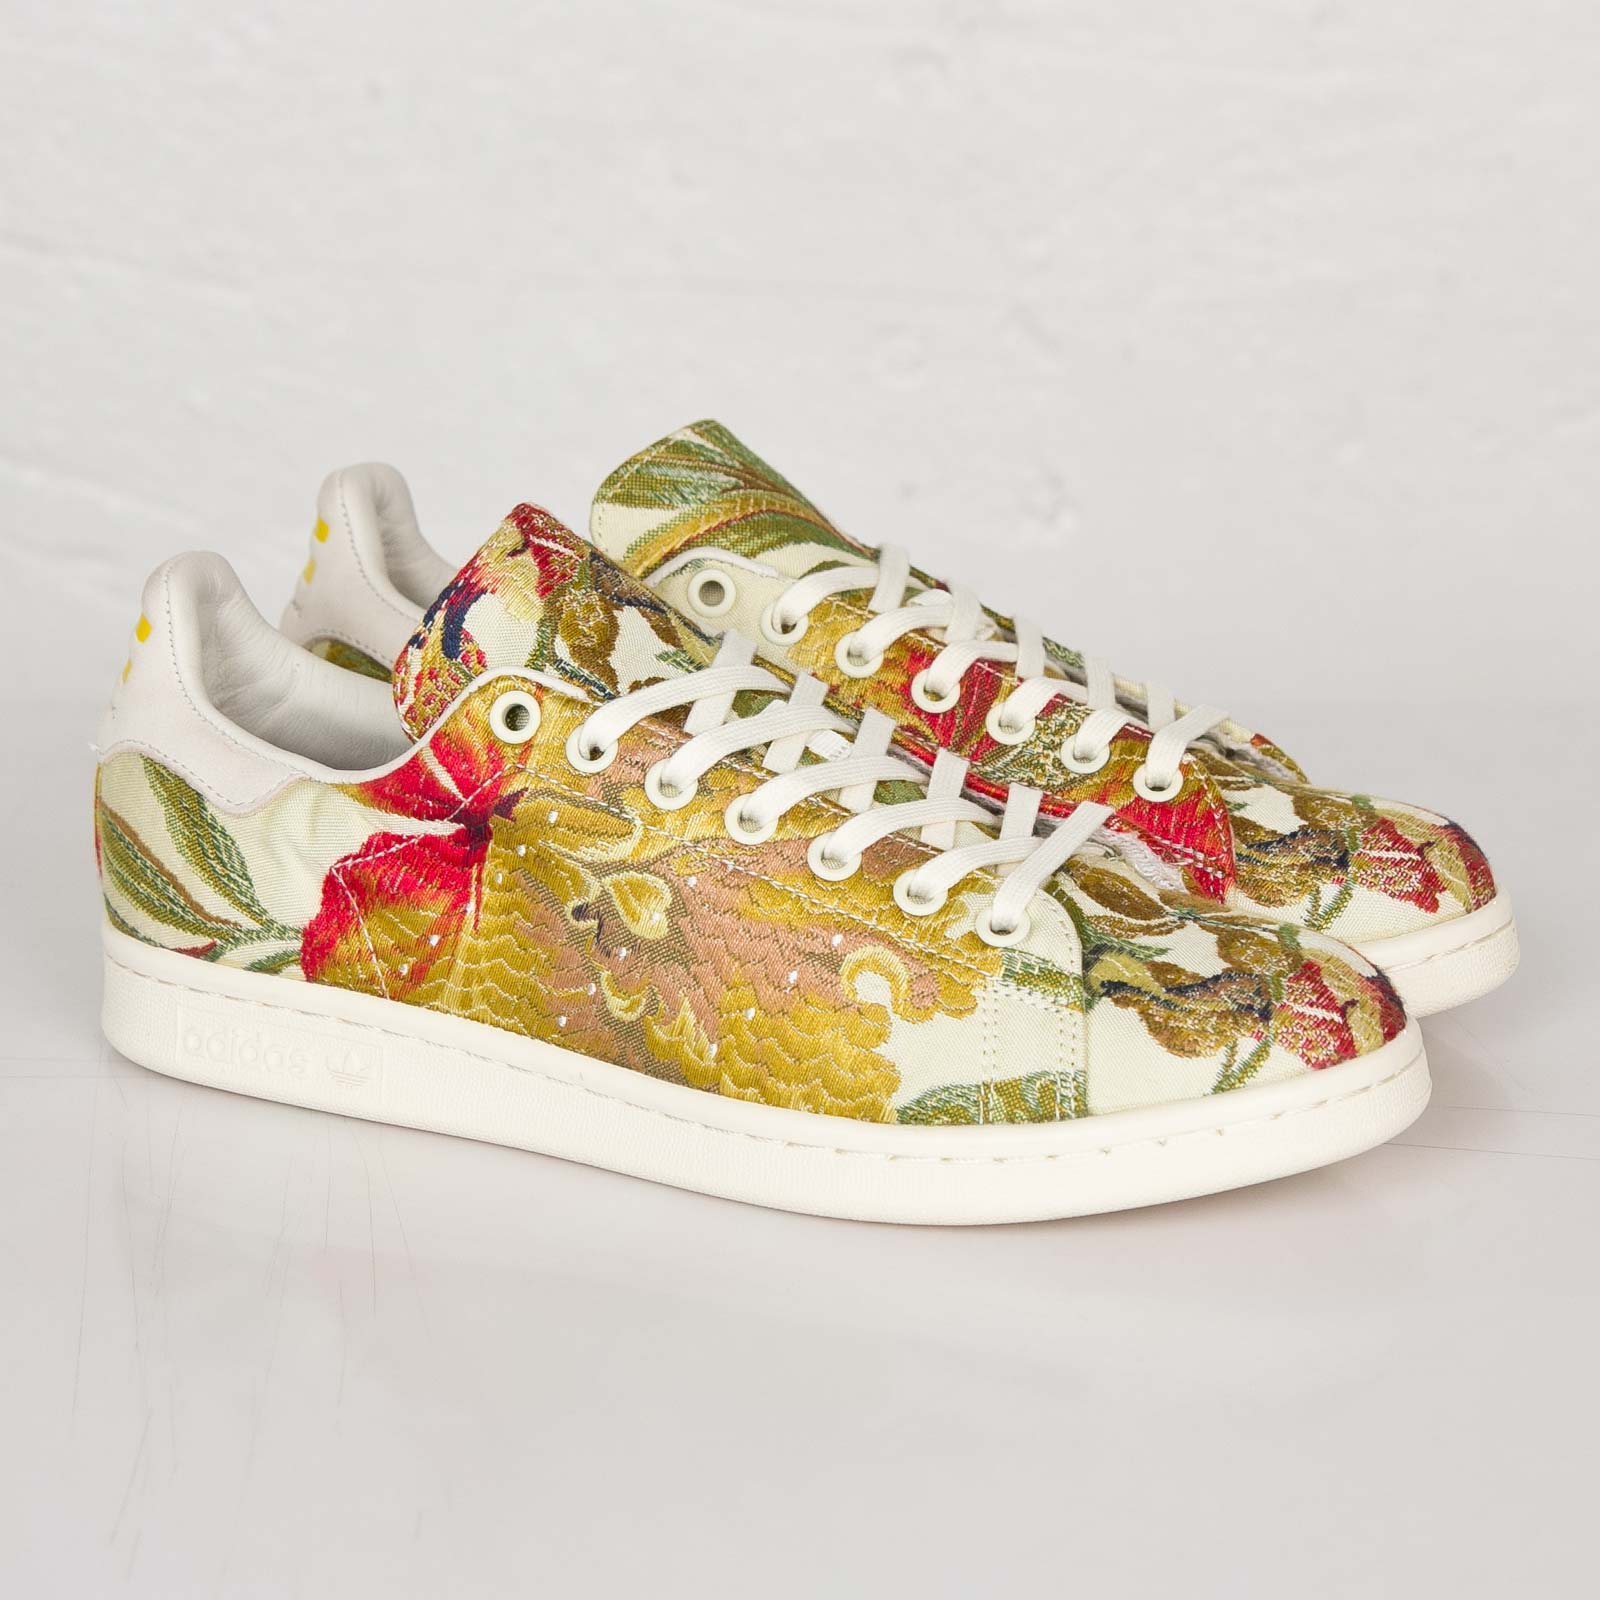 adidas PW Stan Smith Jacquard B25383 Sneakersnstuff